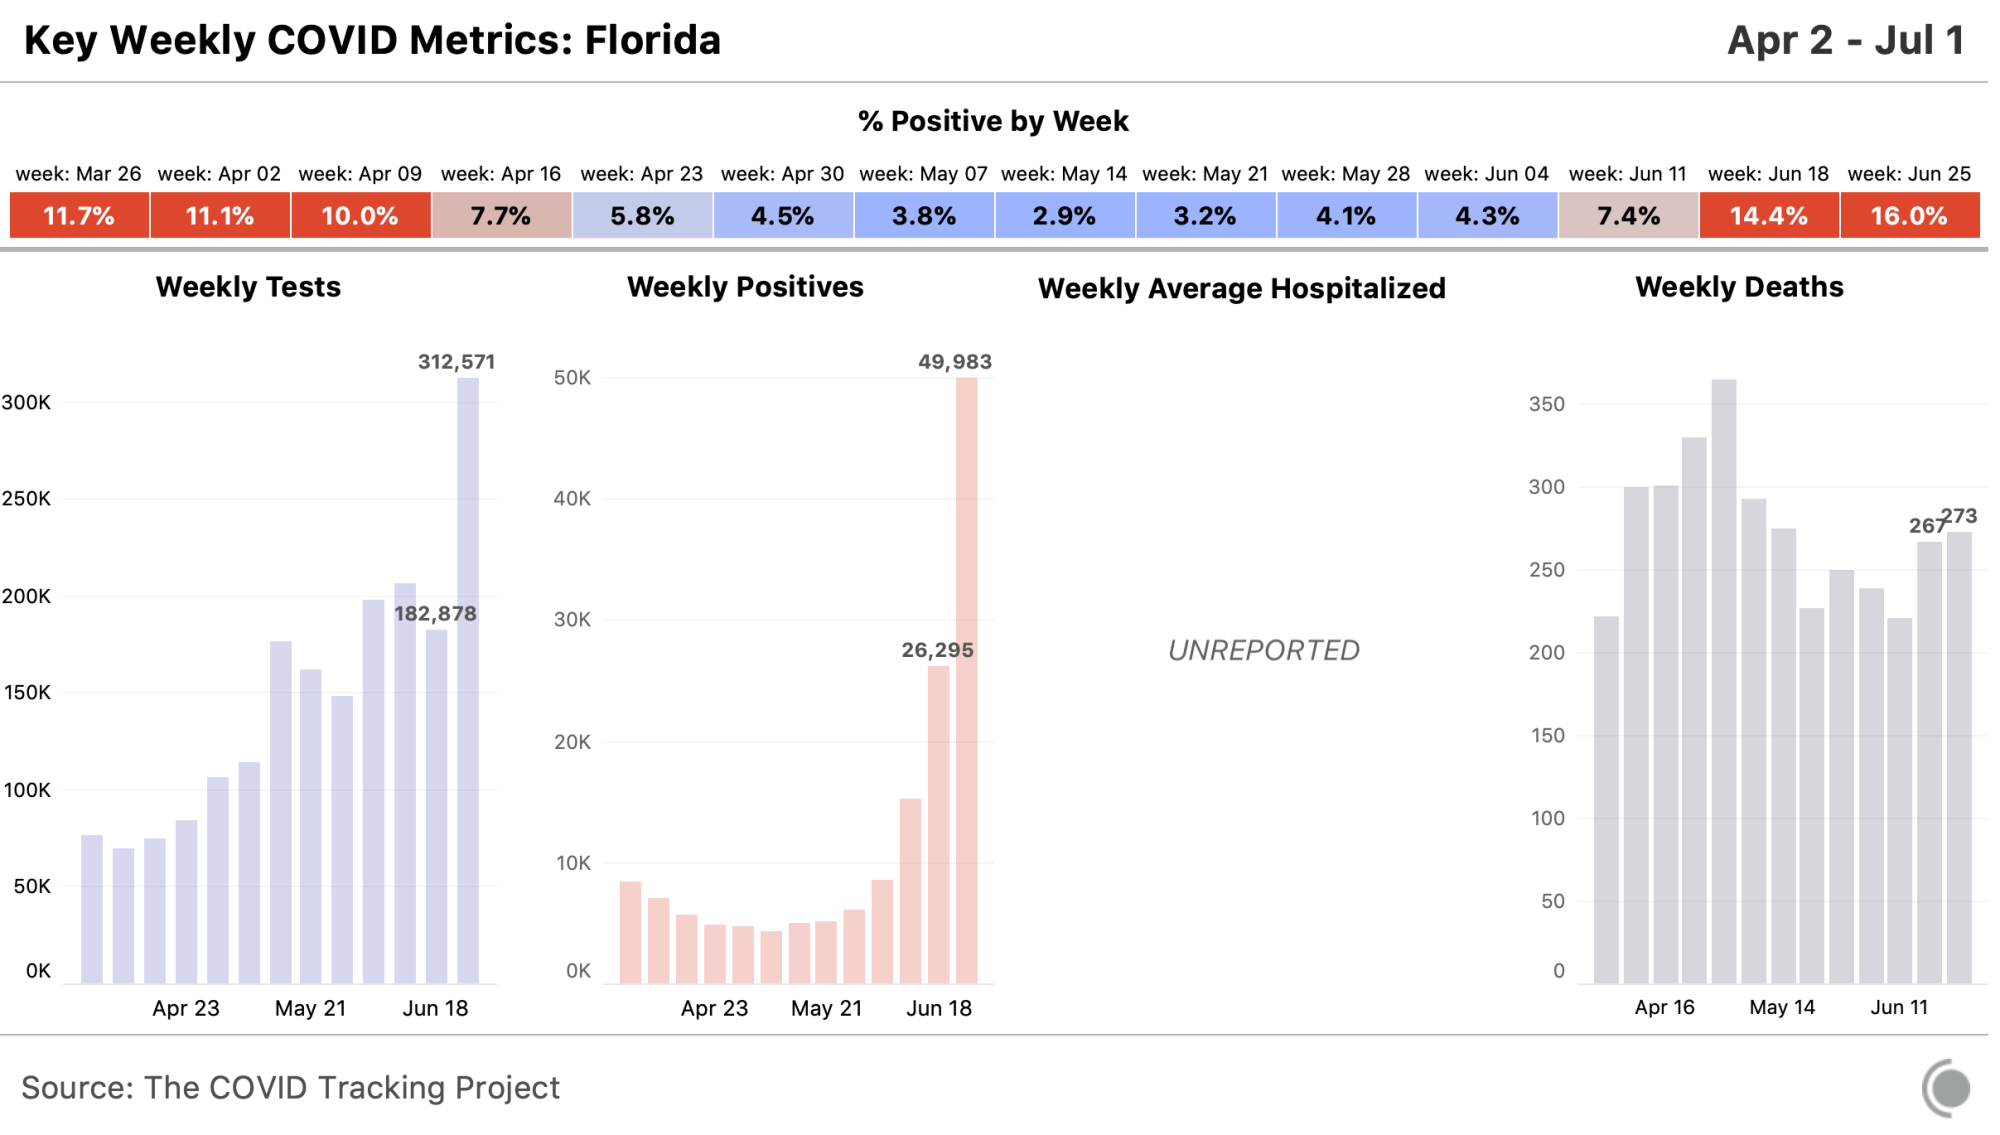 State chart for Florida, all metrics available at https://covidtracking.com/data/state/florida